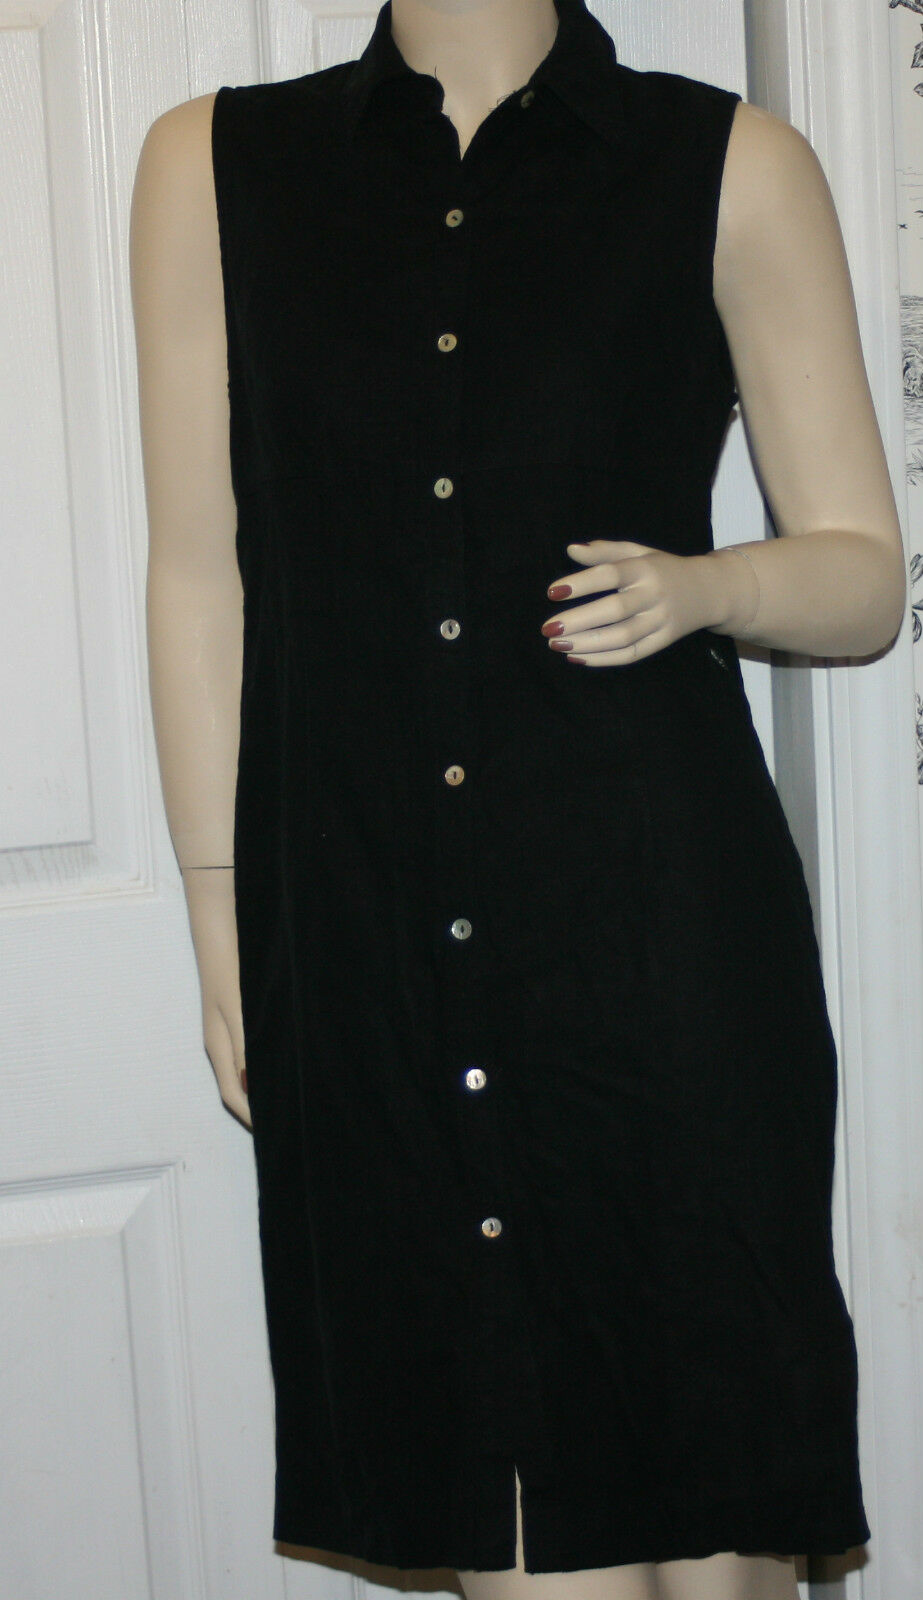 Casual Corner size 4 black linen dress s rayon button up sleeveless